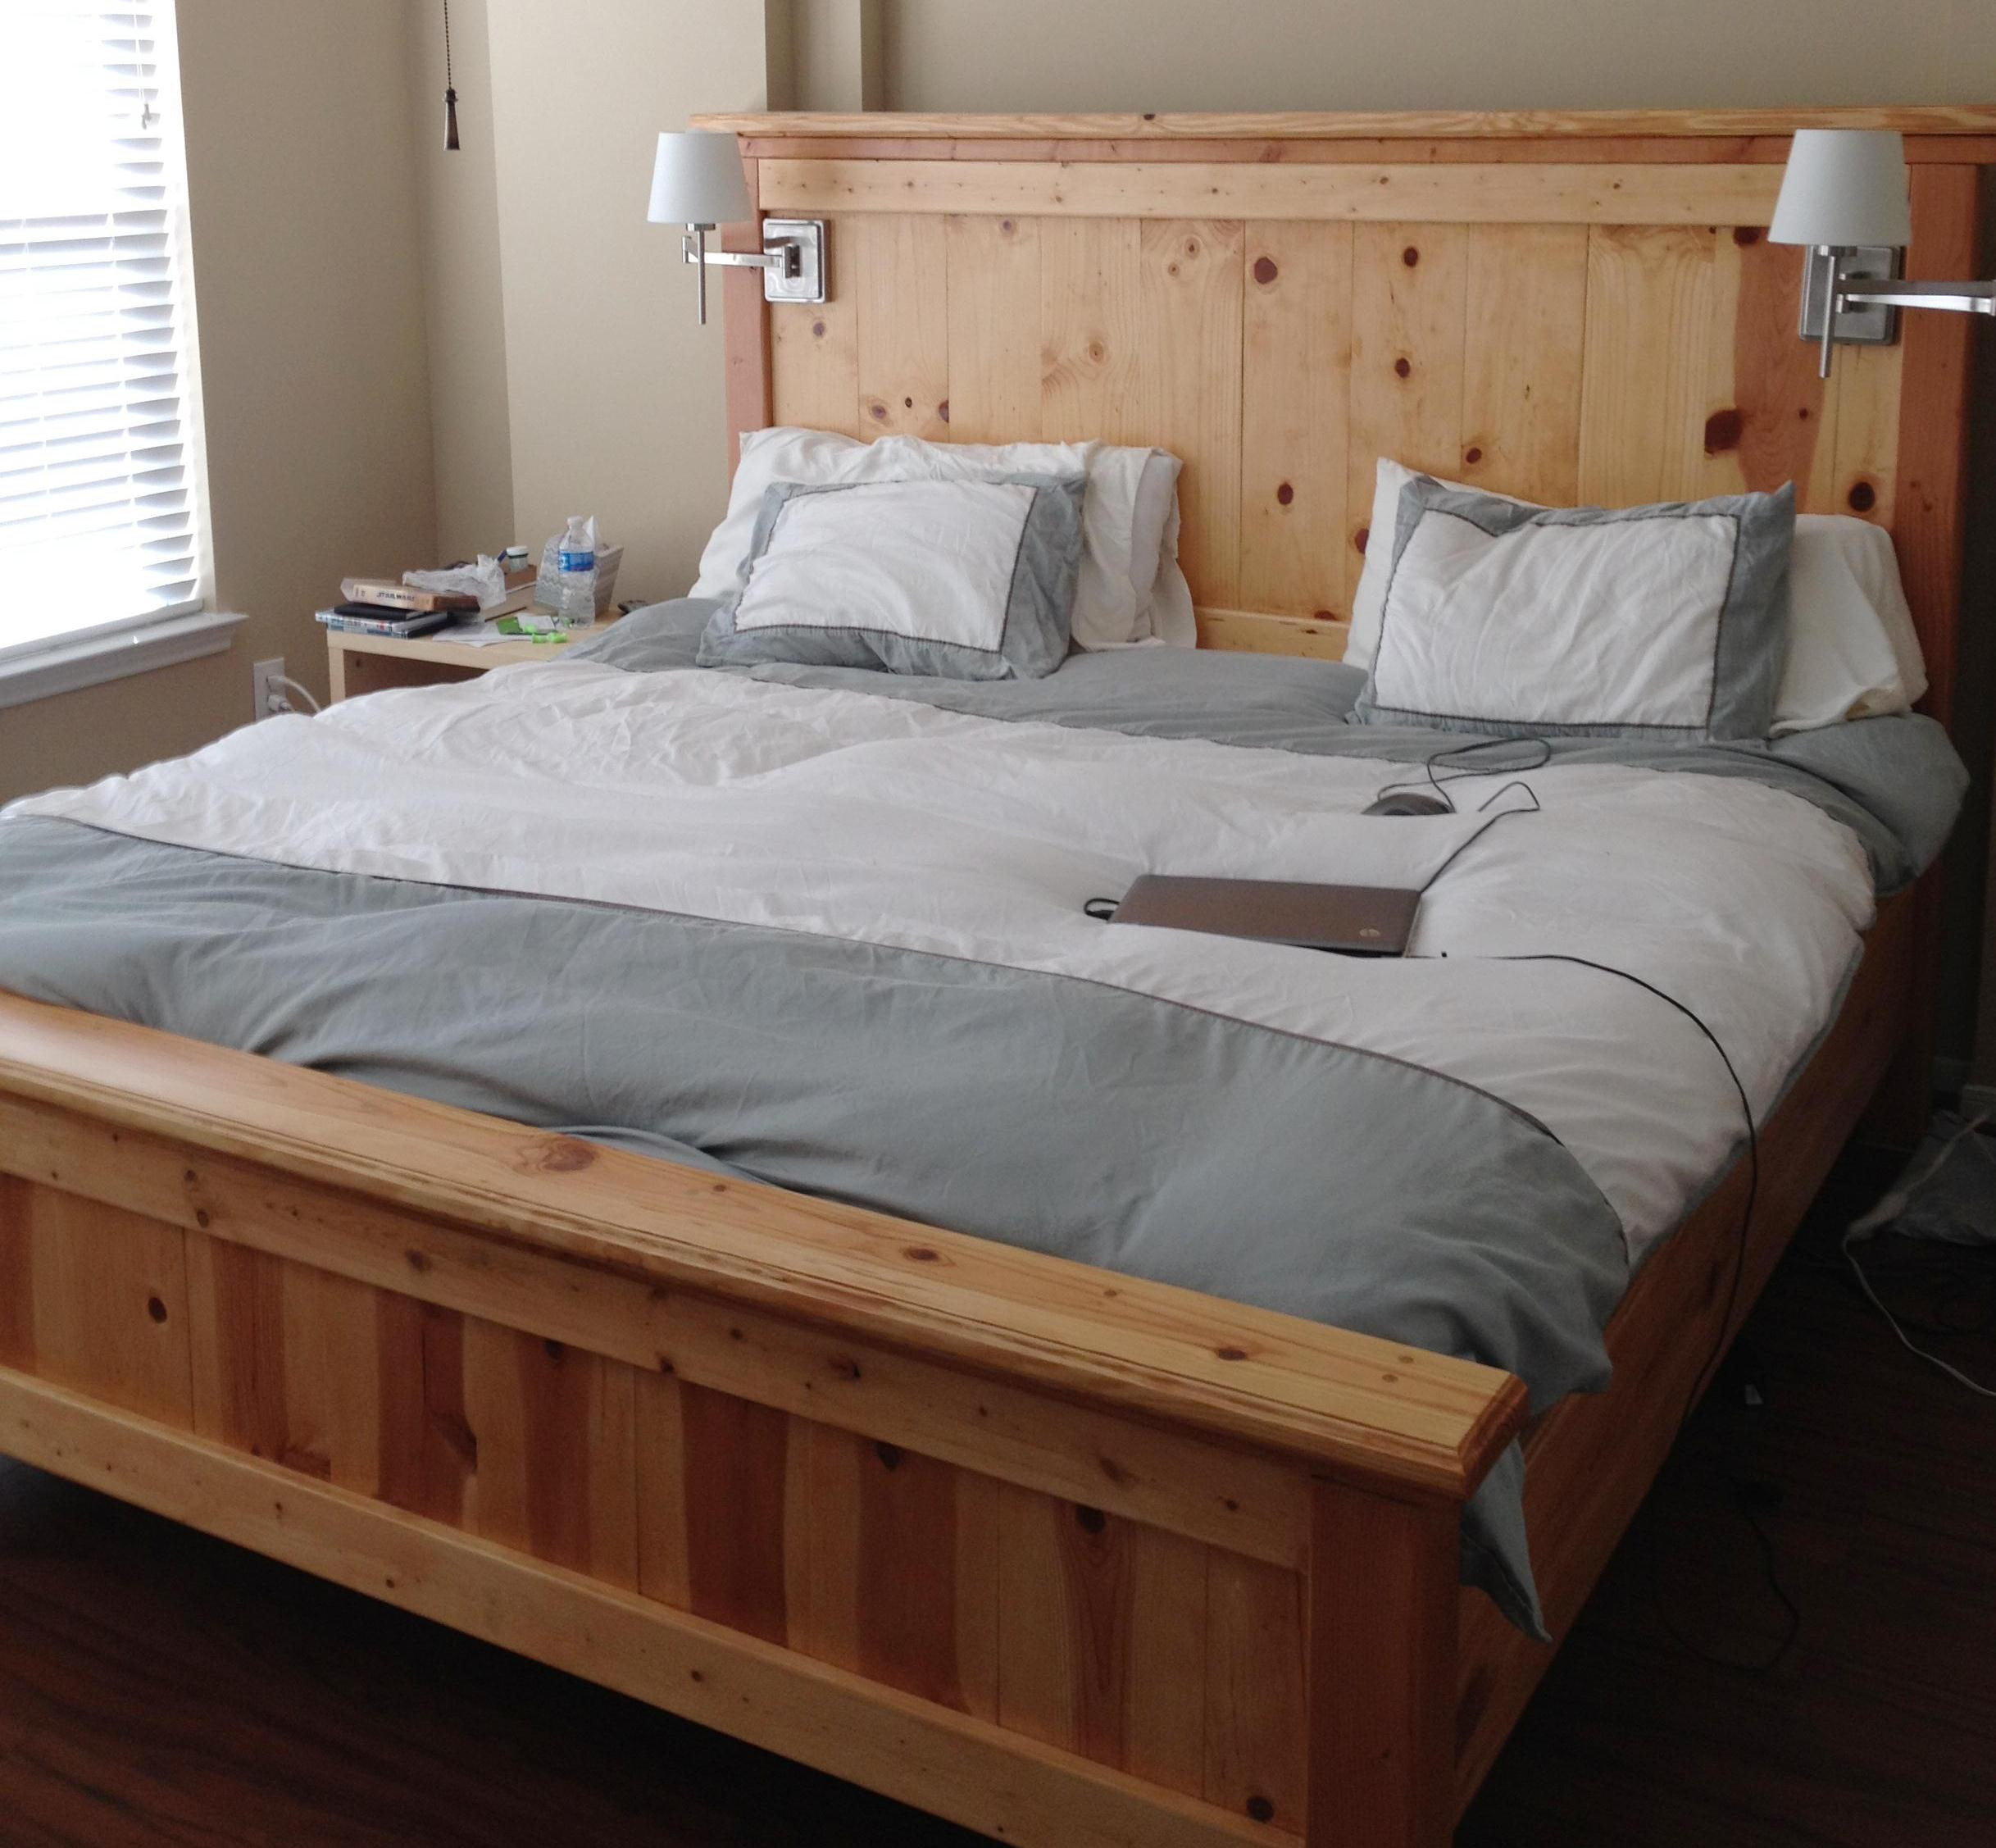 Best ideas about DIY King Bed Frame Plans . Save or Pin Ana White Now.